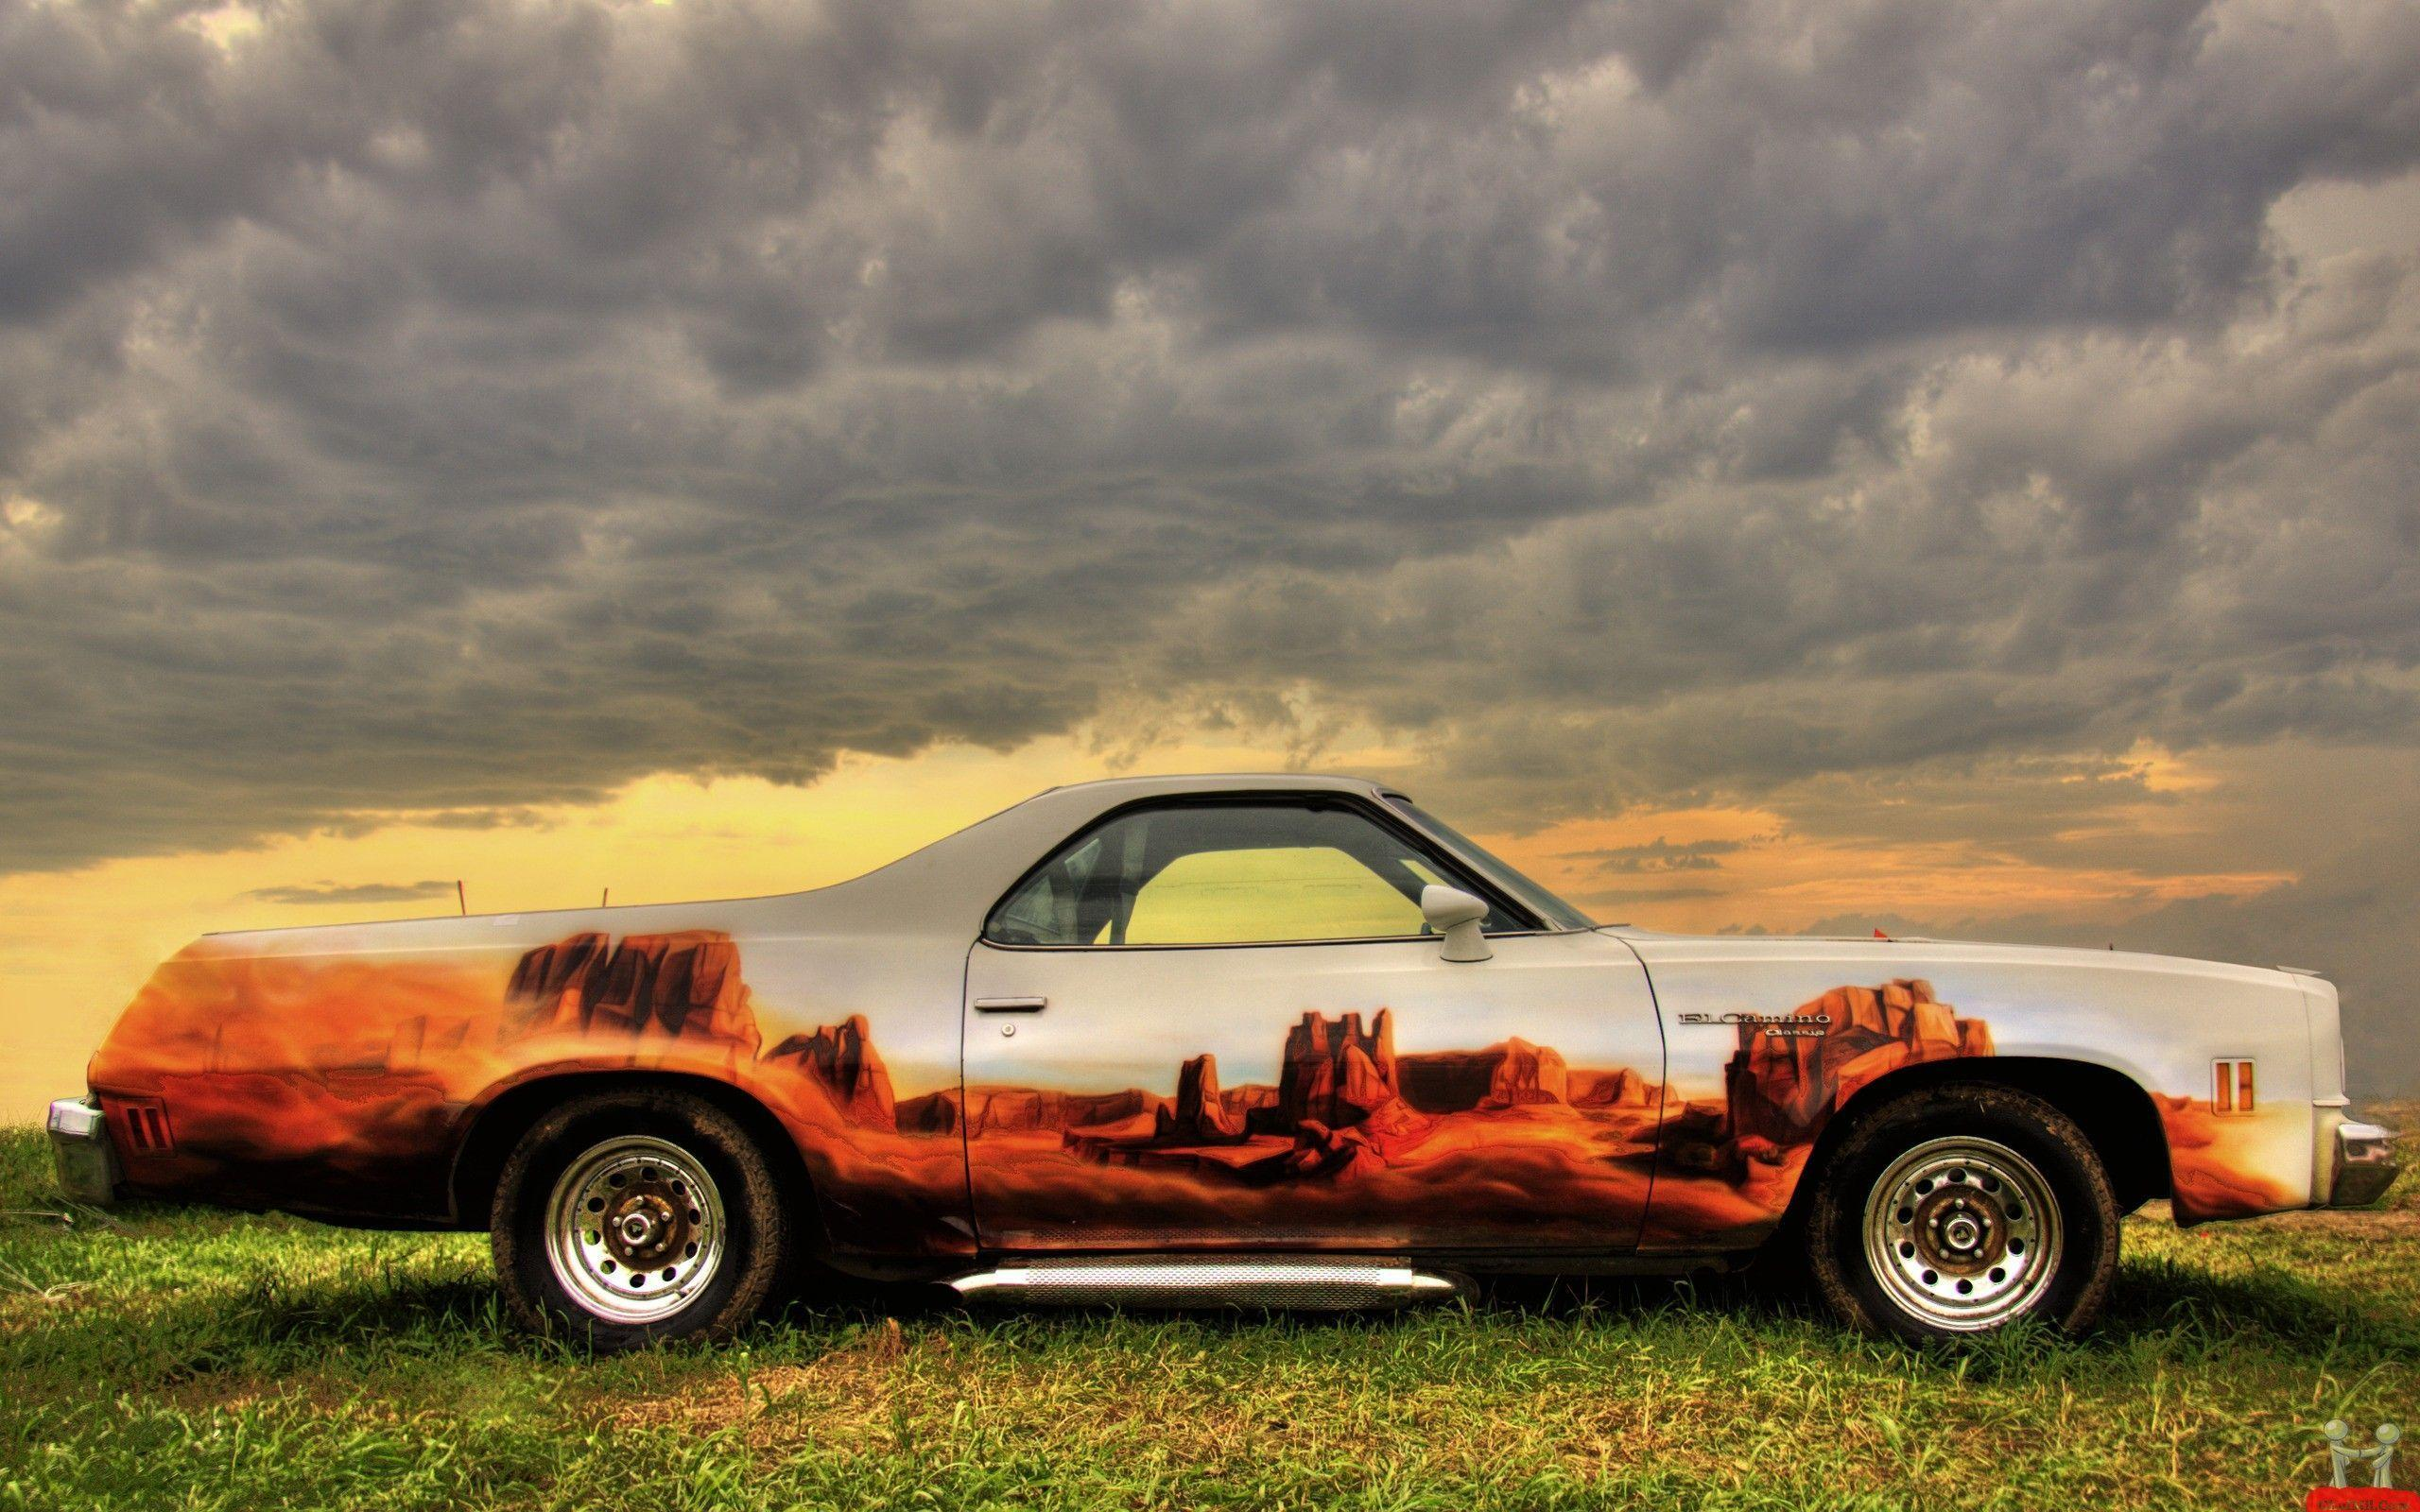 Wallpapers old cars wallpaper cave - Old american cars wallpapers ...